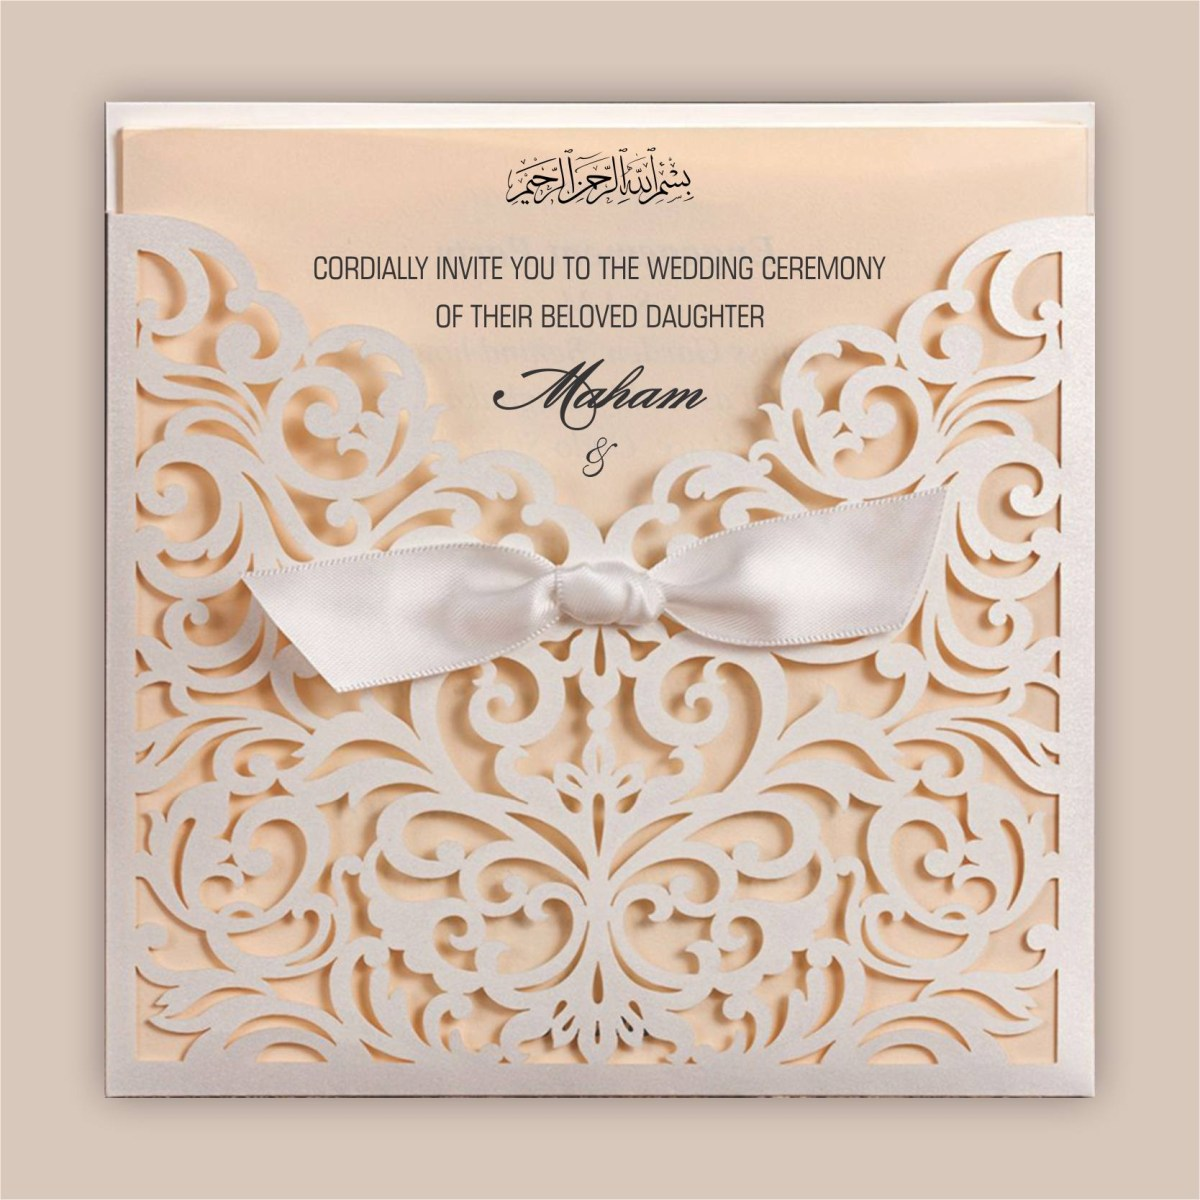 Muslim Wedding Invitations Planning Your Marriage With The Best Muslim Wedding Cards Qwedding